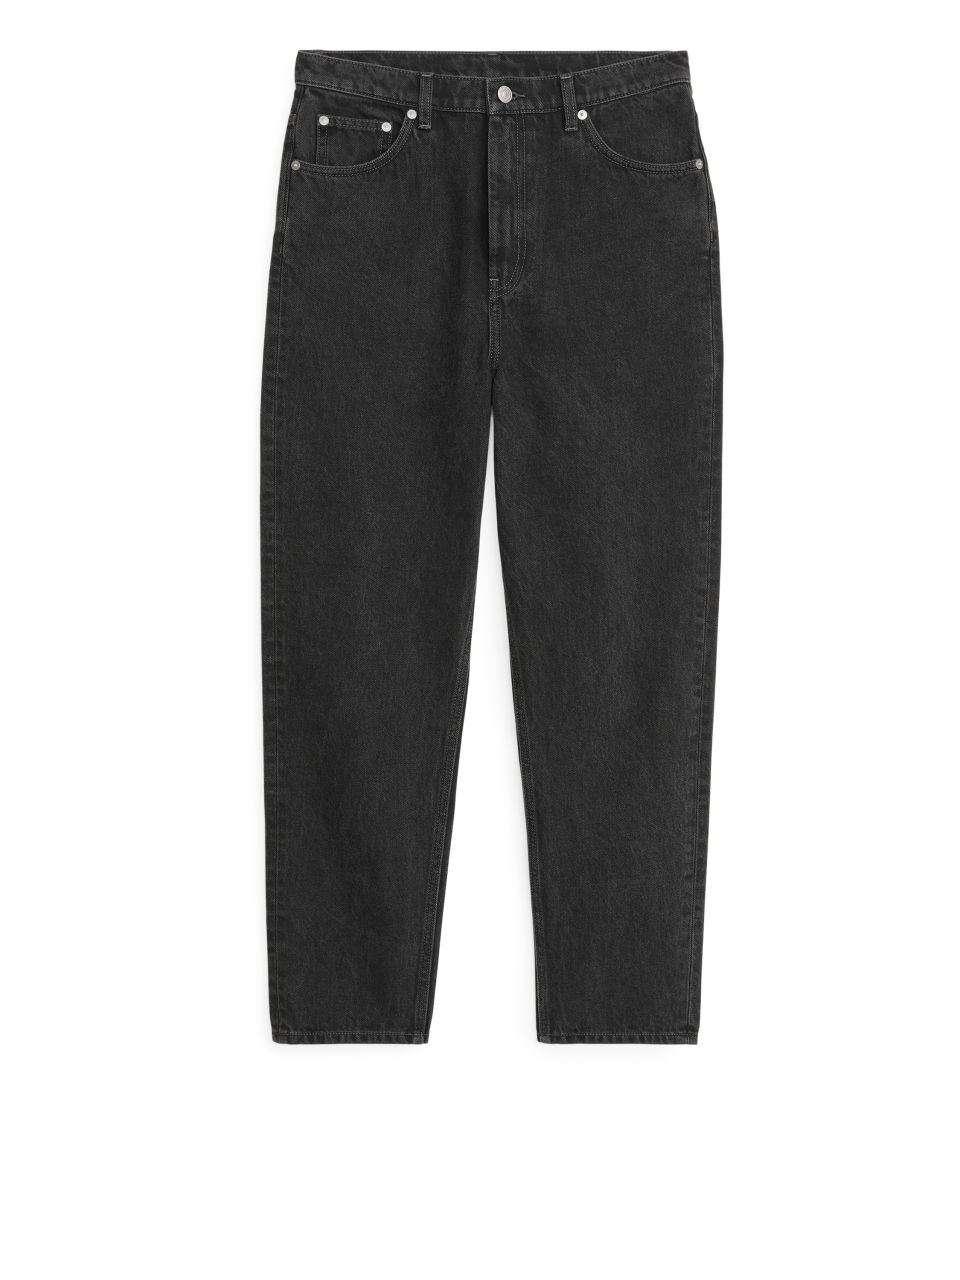 TAPERED Jeans - Black